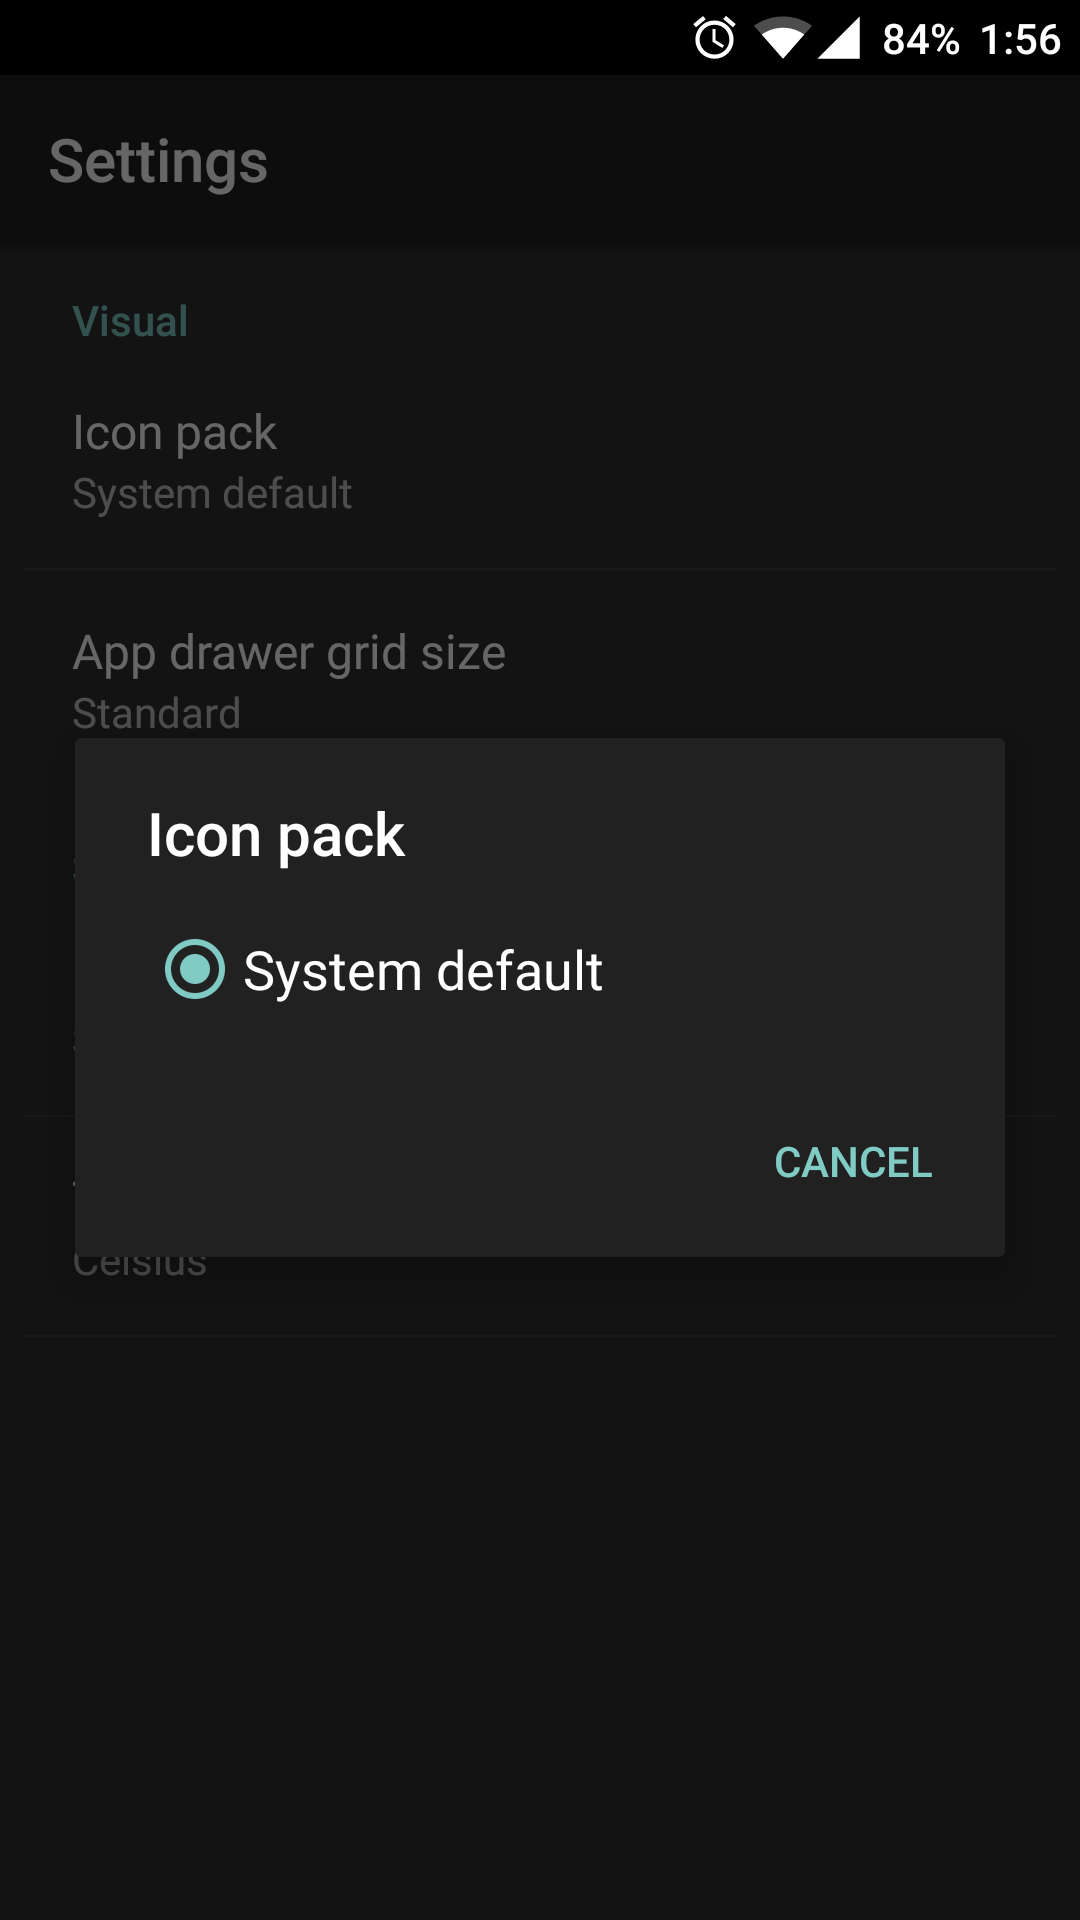 Default icon packs missing in oxygen OS - OnePlus Community